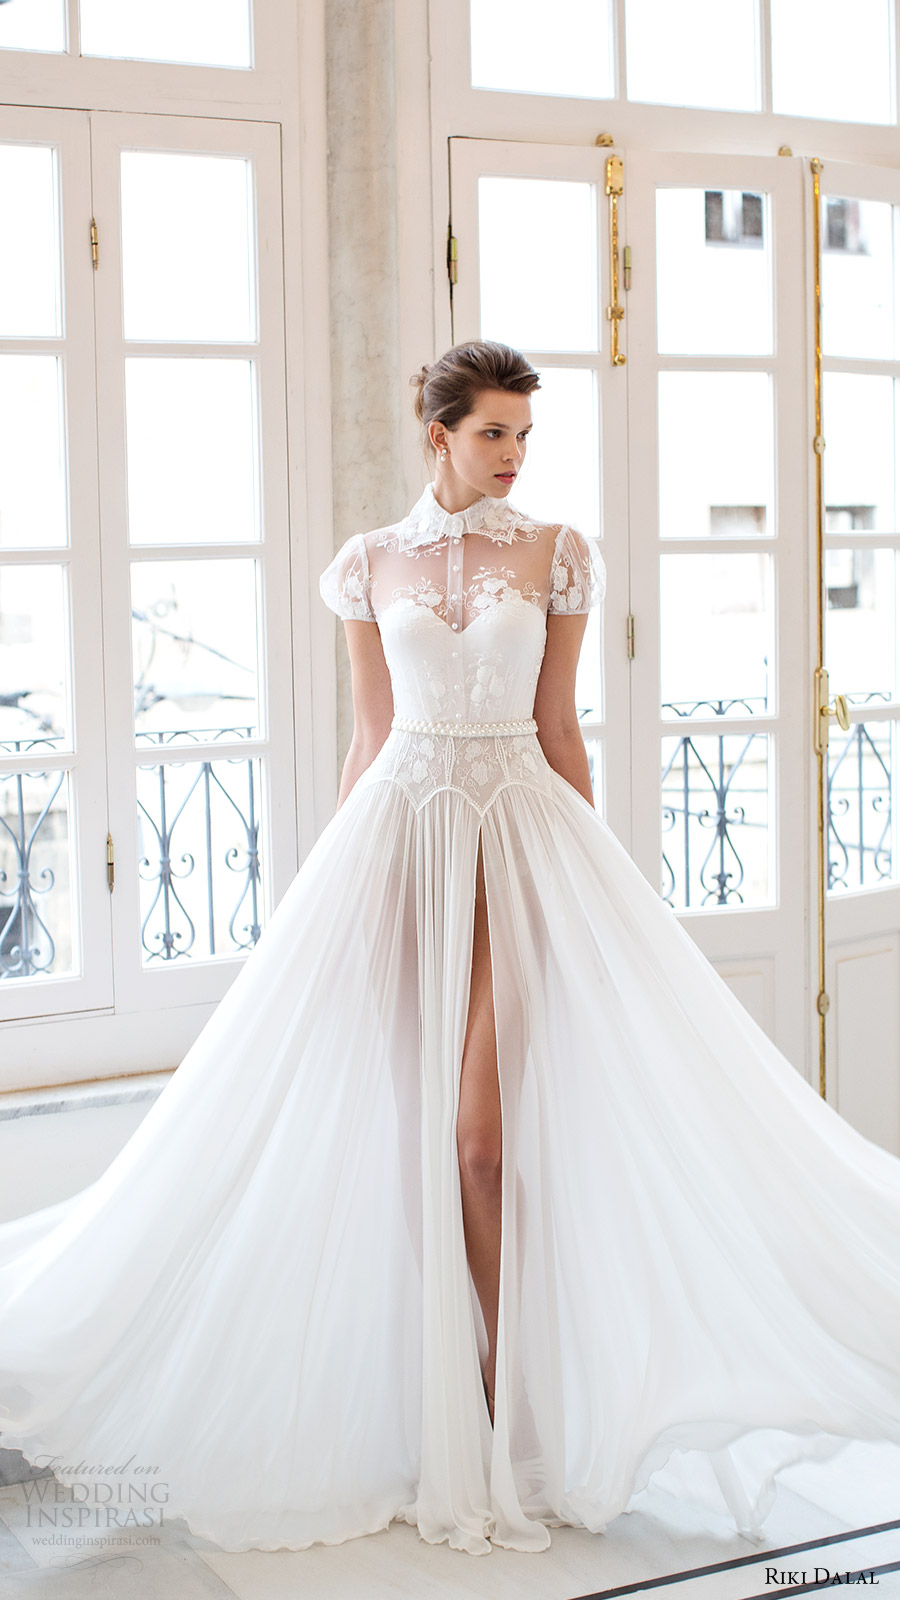 Popular Wedding Dresses in 2016 — Part 1: Ball Gowns & A ...